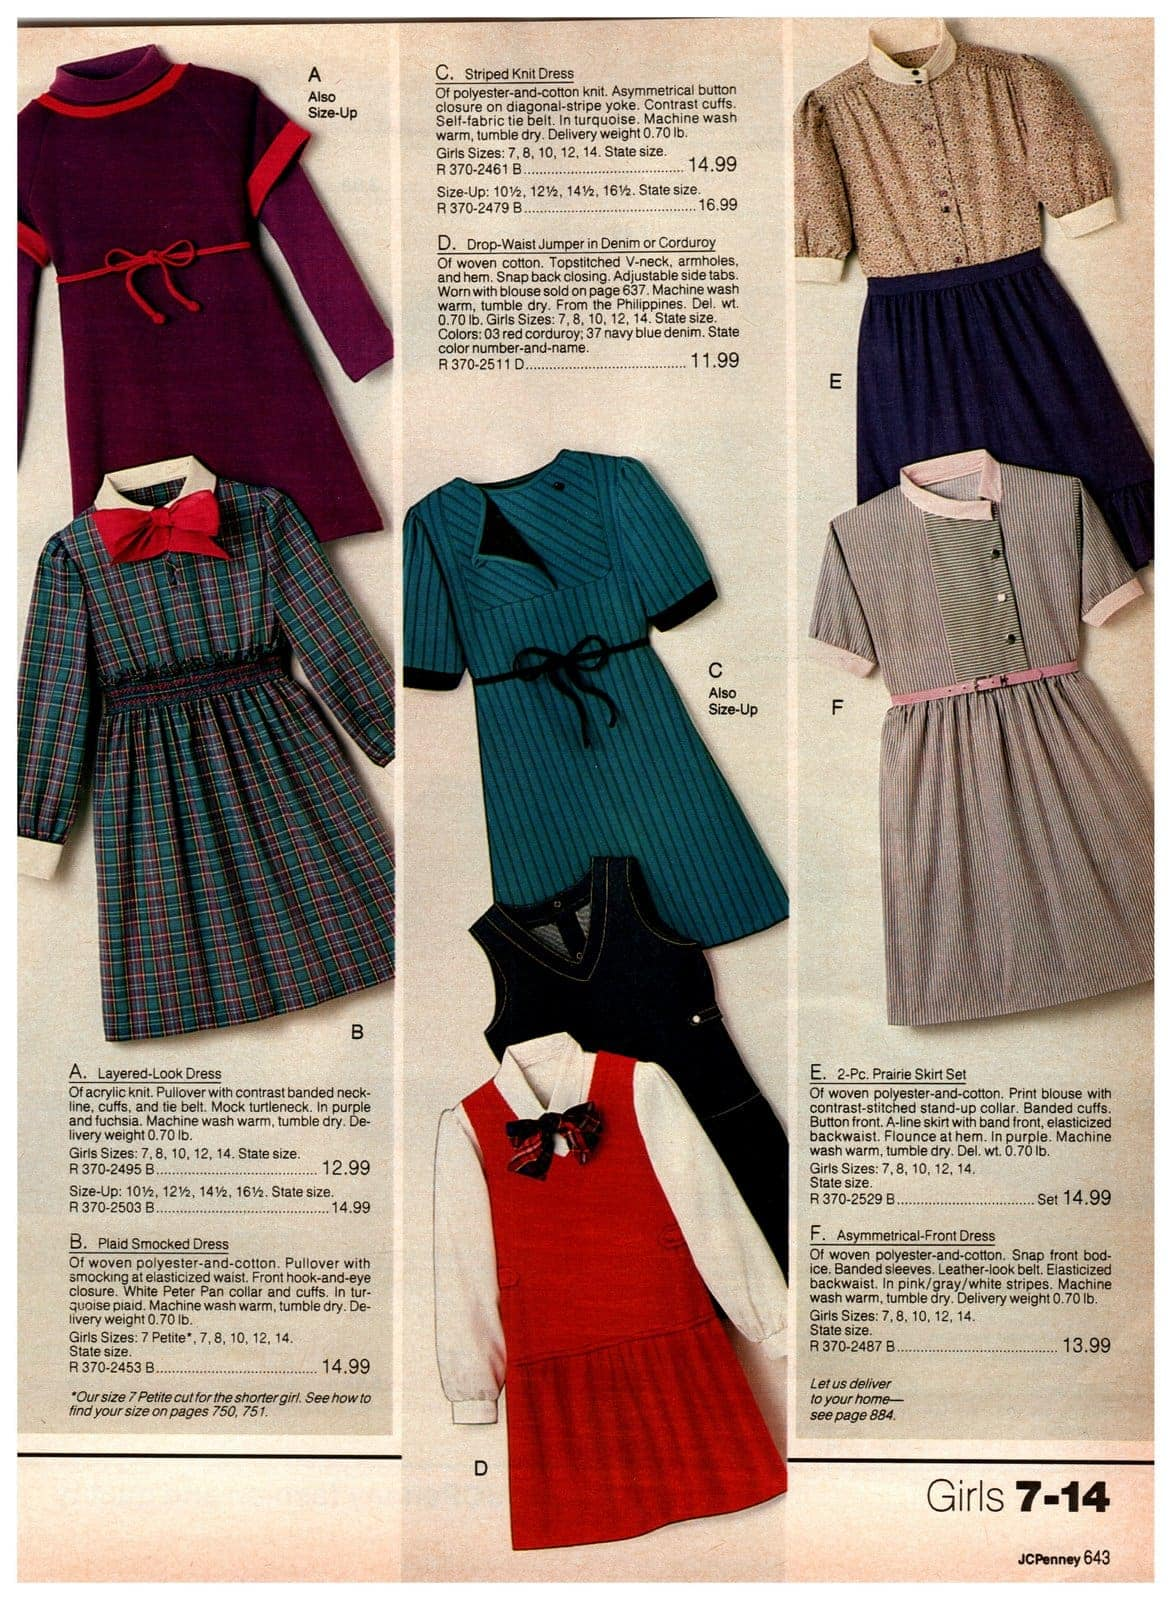 Layered-lock dresses, plus plaid-smocked, striped knit and asymmetrical front dresses